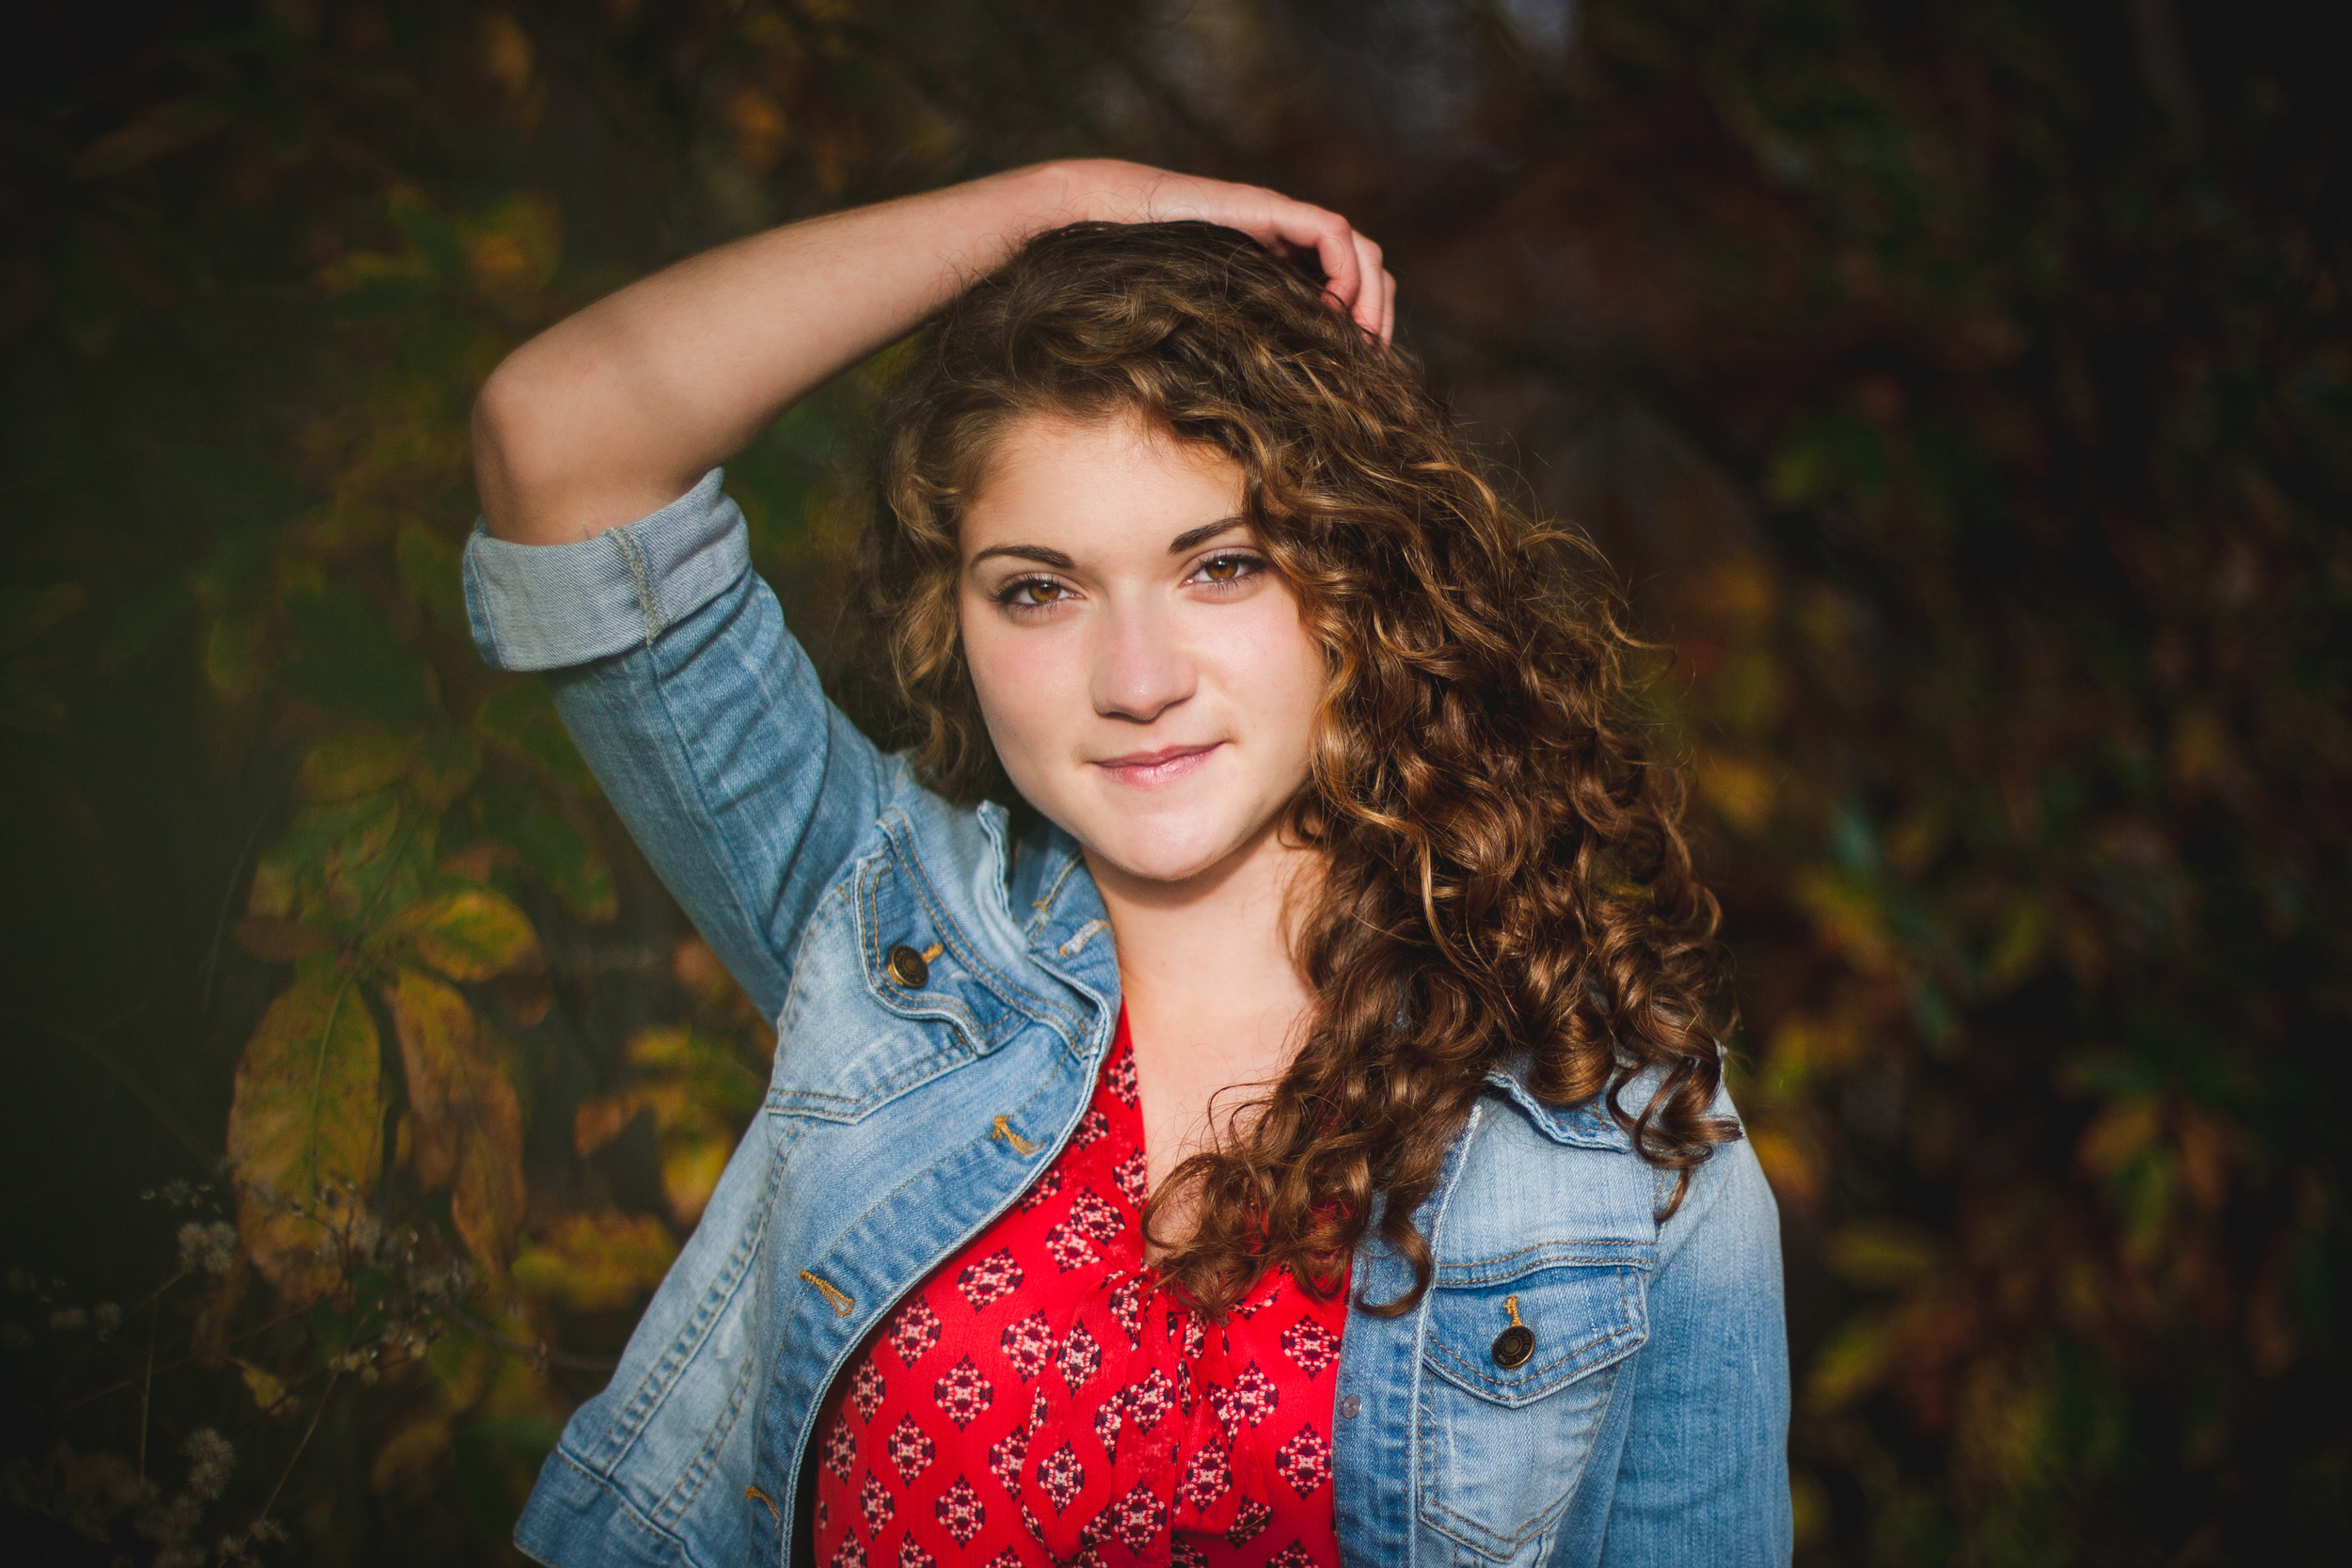 abby_senior_photos-58.jpg